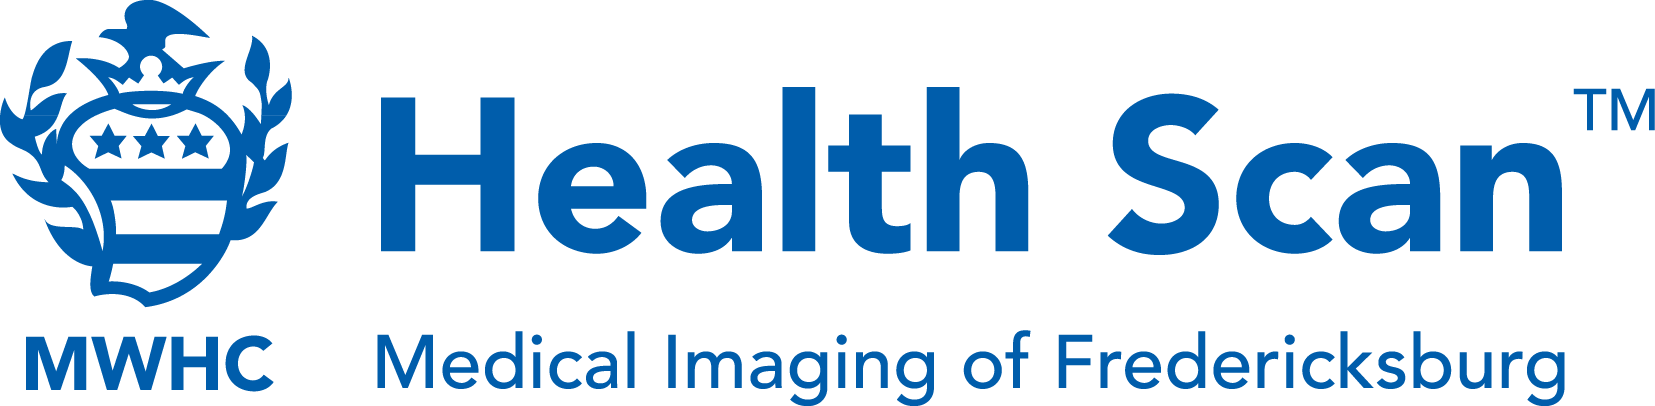 Health Scan